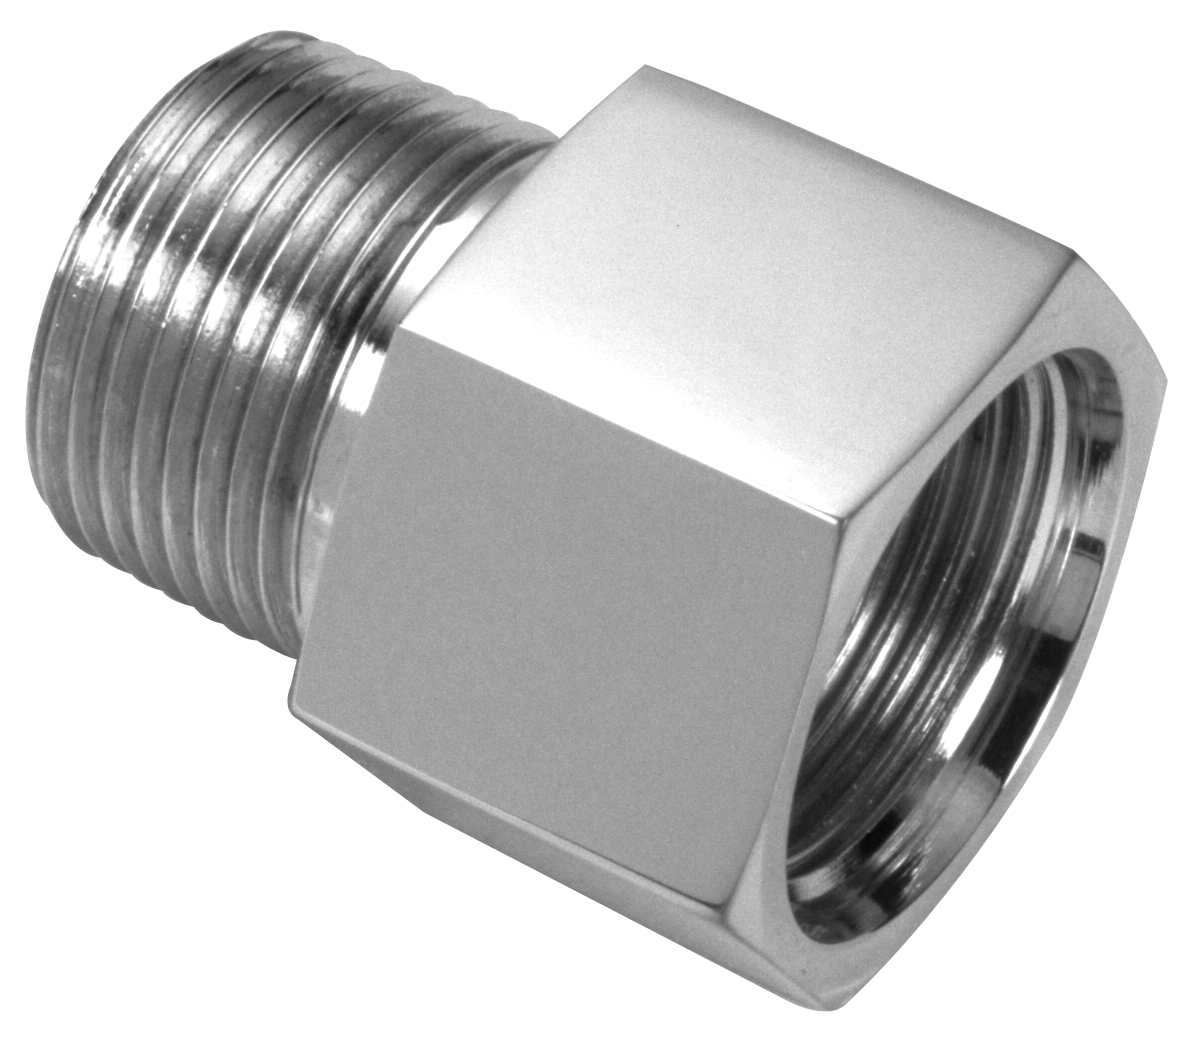 List of synonyms and antonyms the word pipe adapters